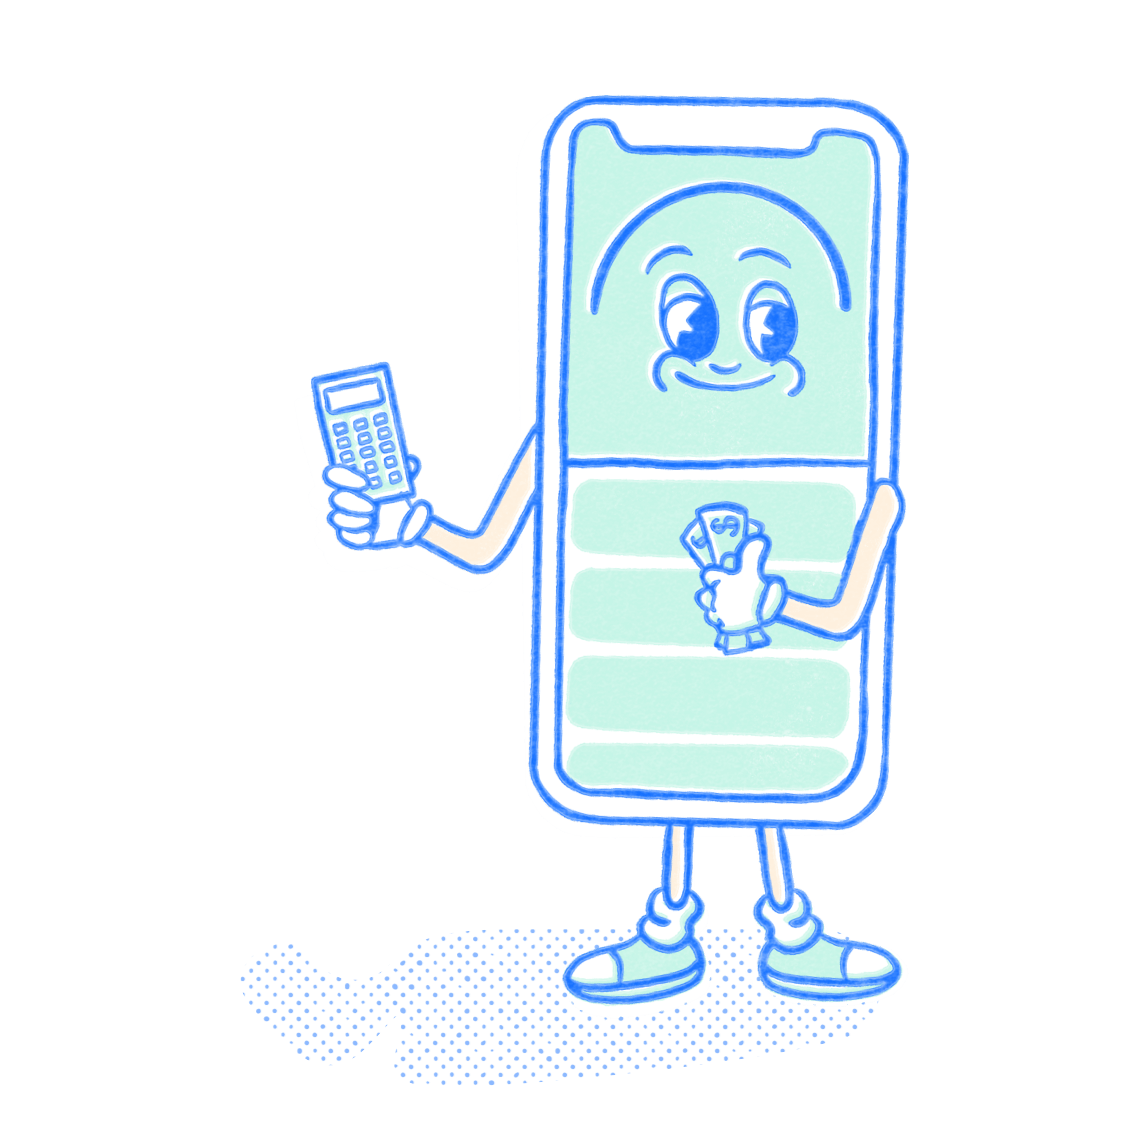 Finance Pocket Prep mascot holding a calculator and dollar bills. Illustration.